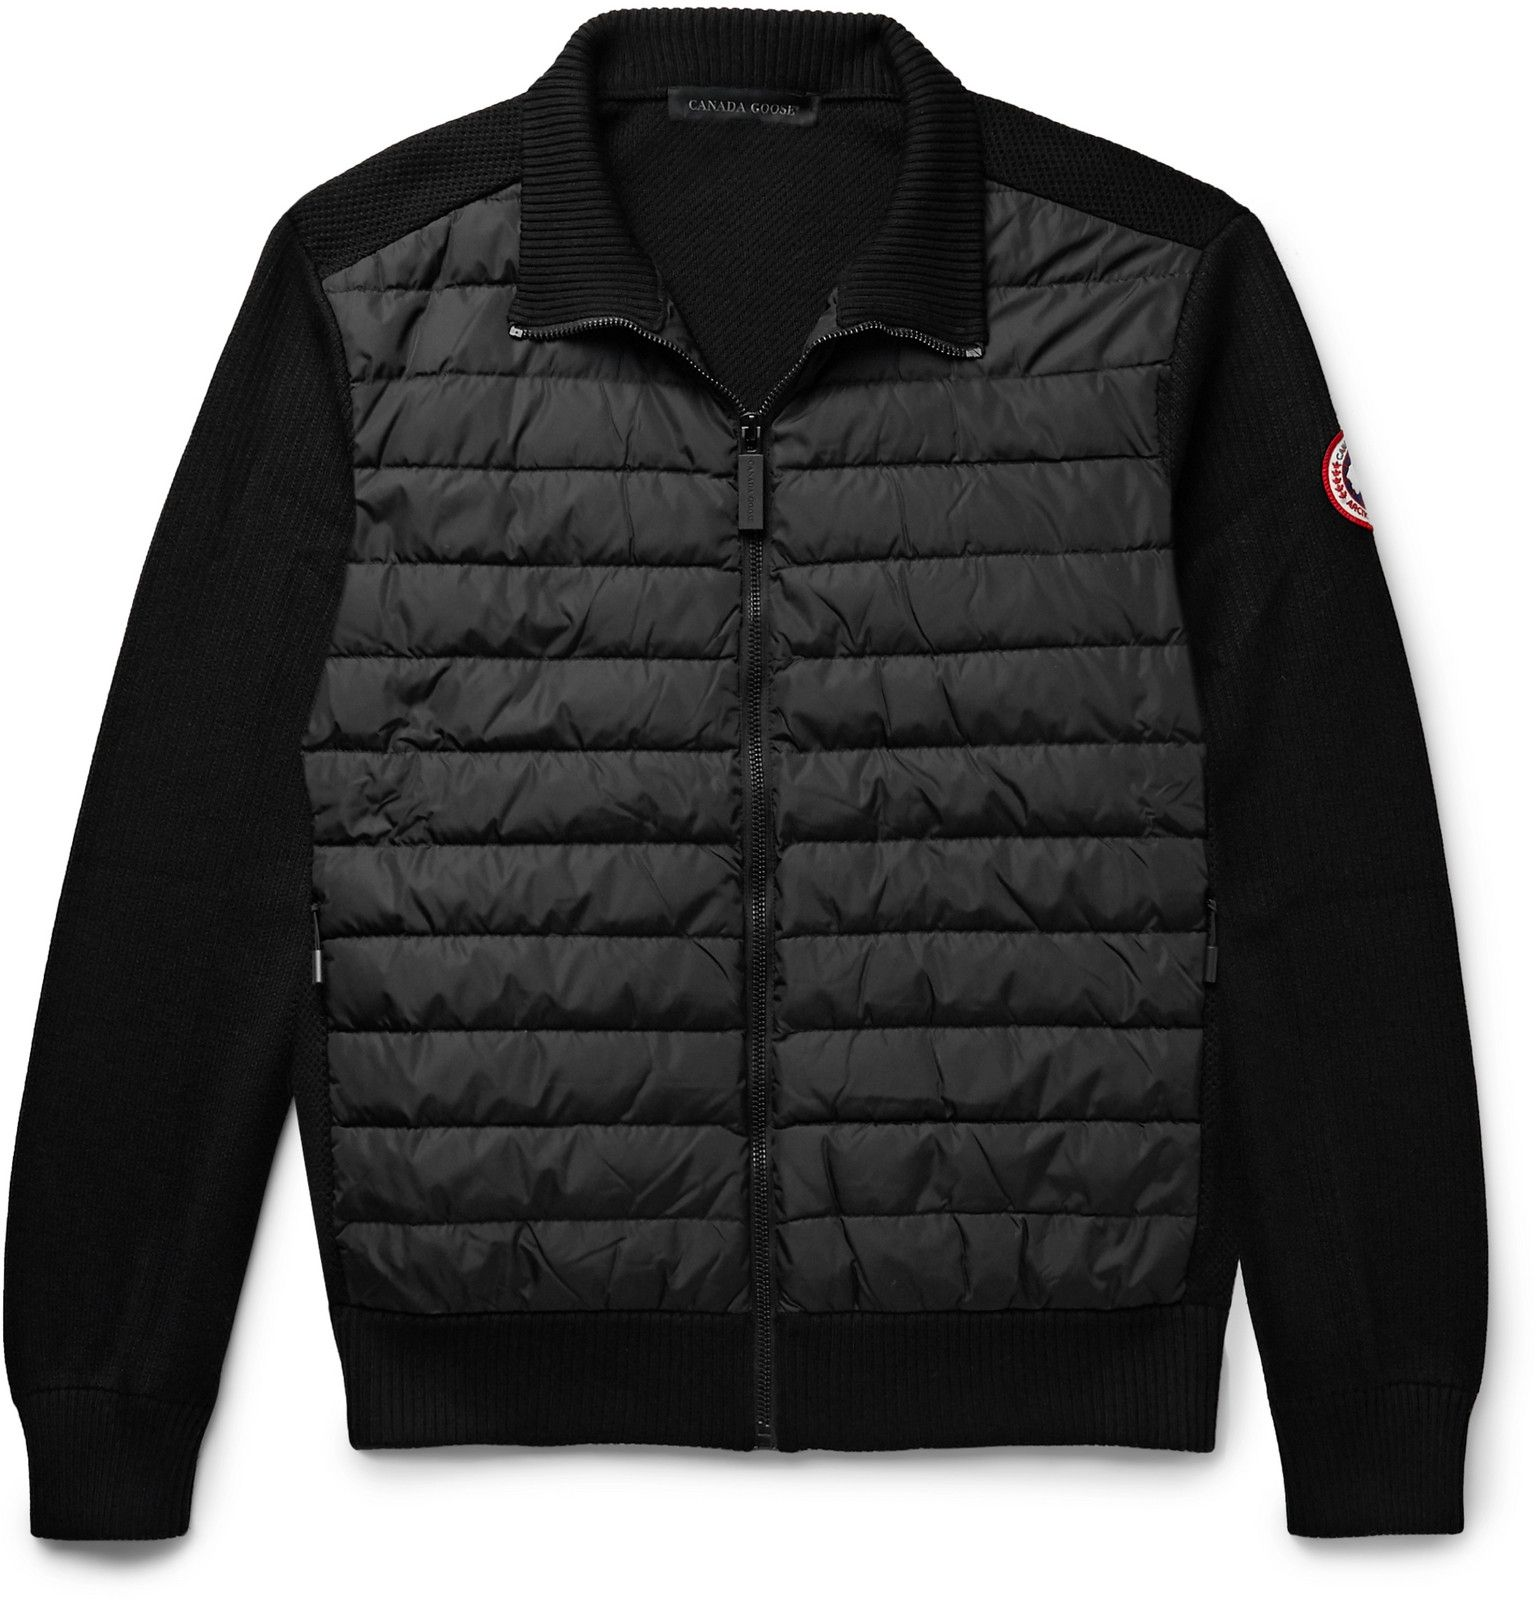 Canada Goose Hybridge Quilted Down Shell And Merino Wool Jacket Men Black In 2020 Jackets Canada Goose Jackets Winter Jackets